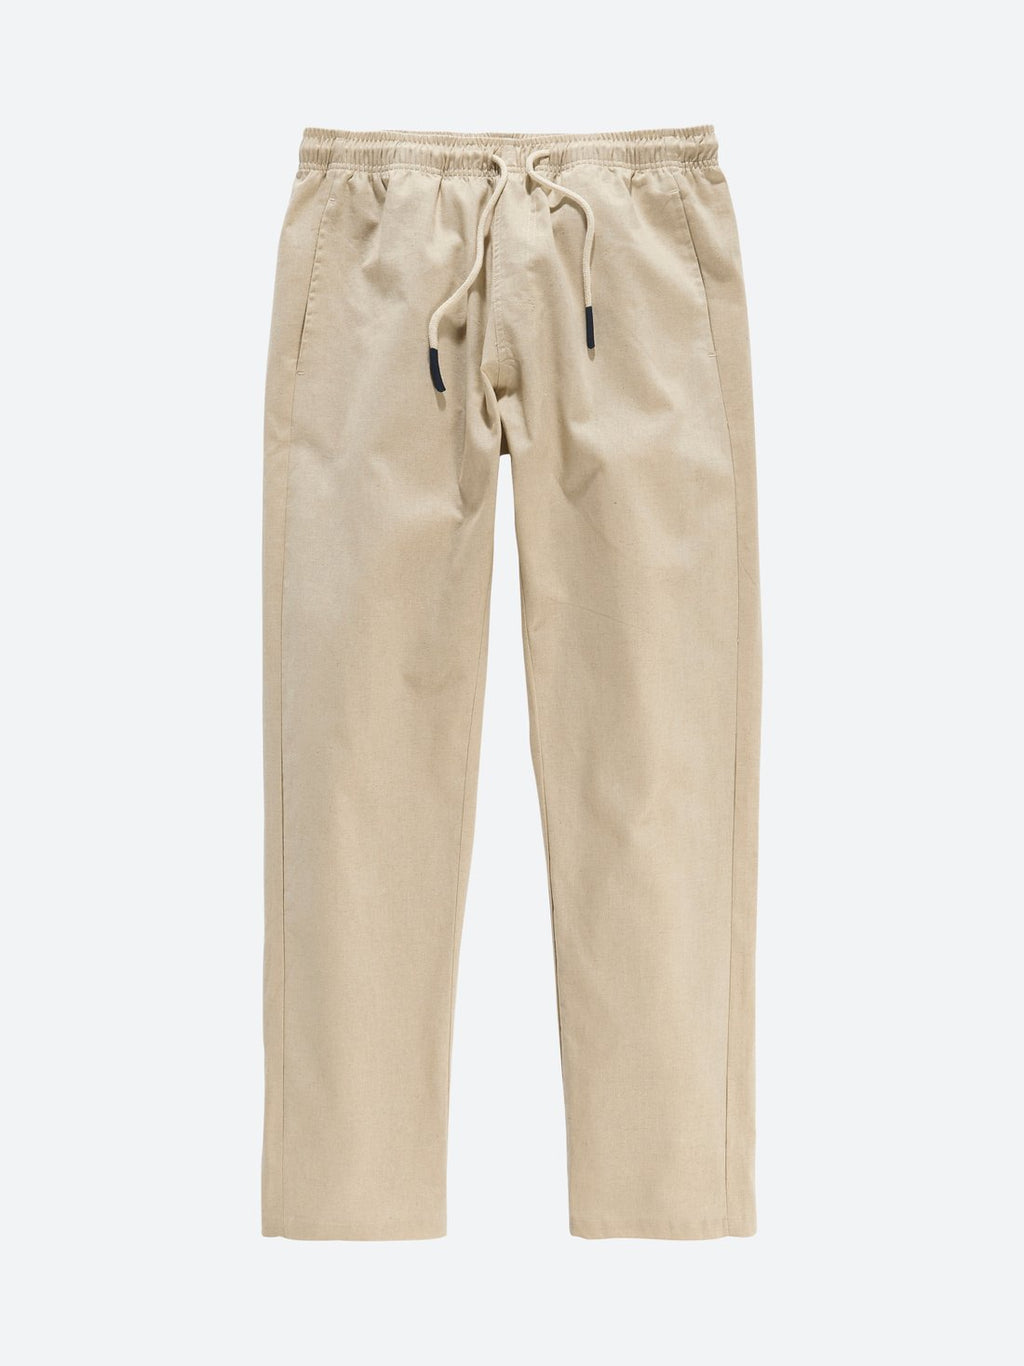 Oas Beige Linen Long Pant - Mojo Independent Store